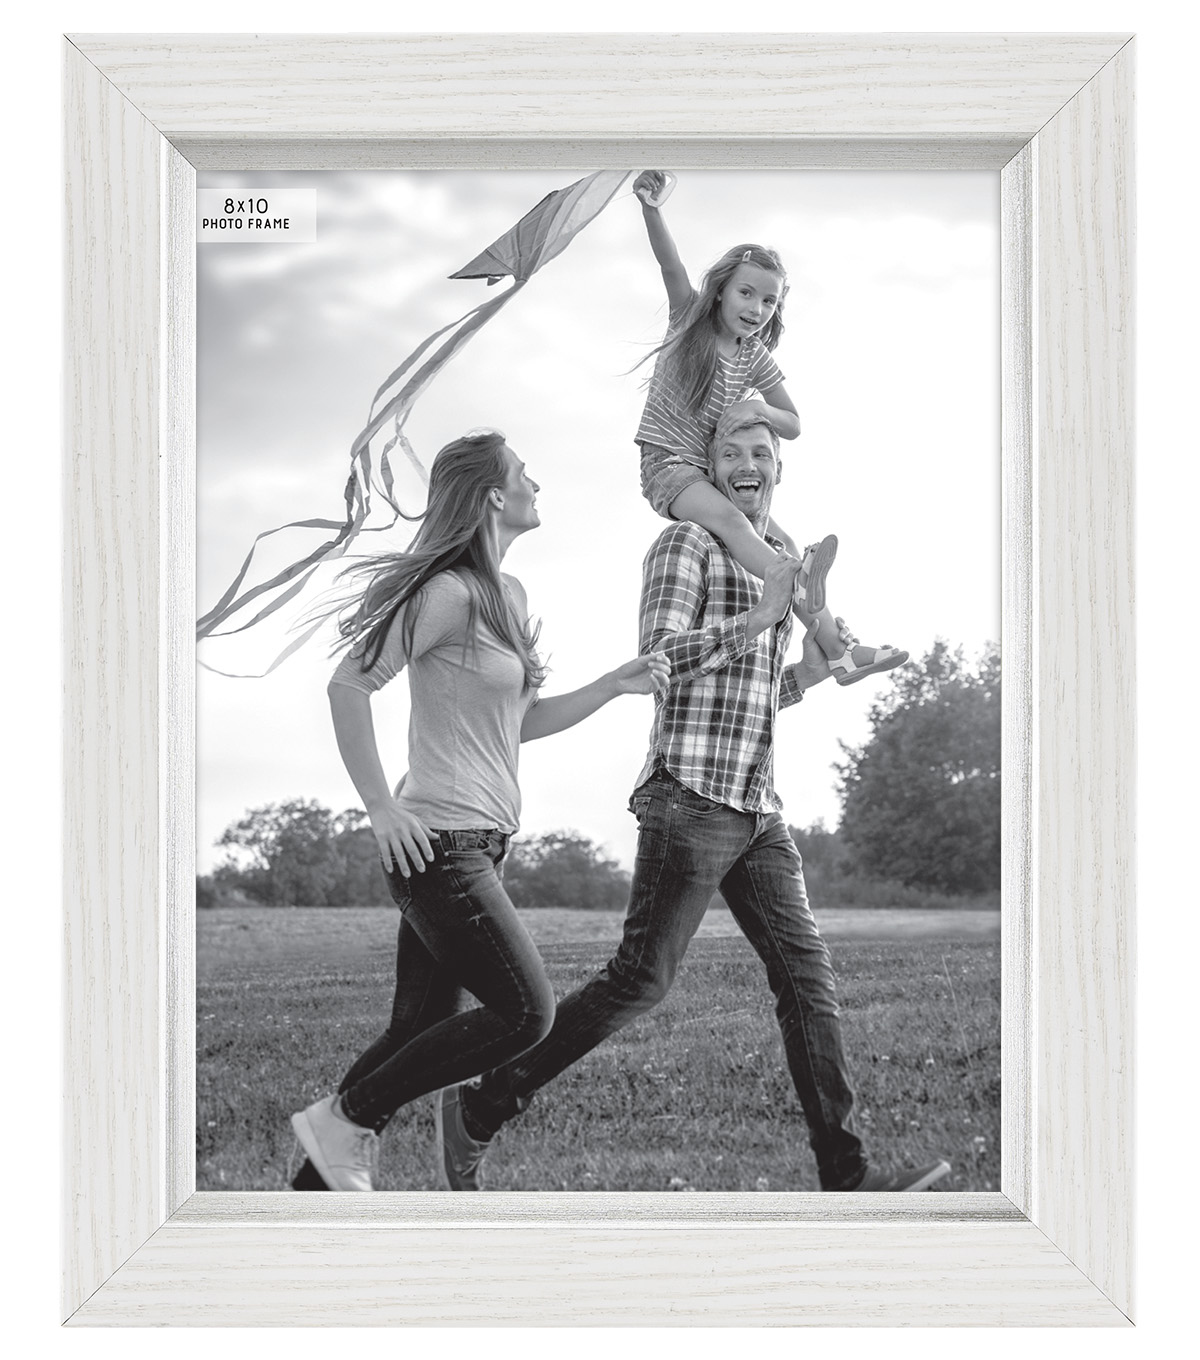 Plastic & Glass Picture Frame 8\'\'x10\'\'-White with Silver Accent | JOANN